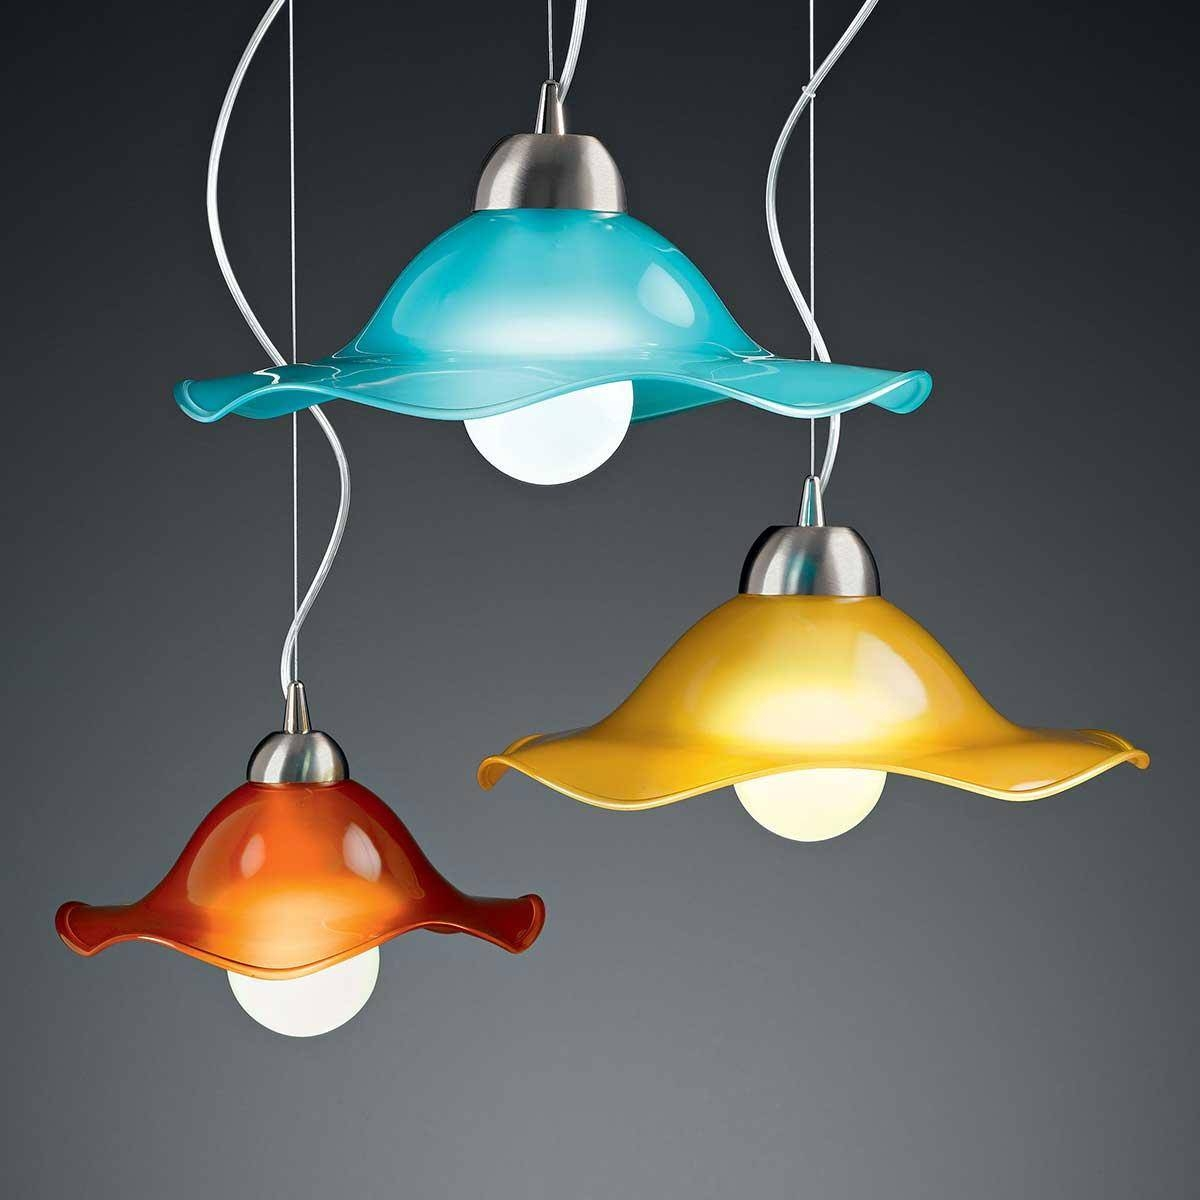 Astonishing Murano Glass Pendant Light 45 In Glass Pendant Lights inside Murano Glass Mini Pendant Lights (Image 2 of 15)